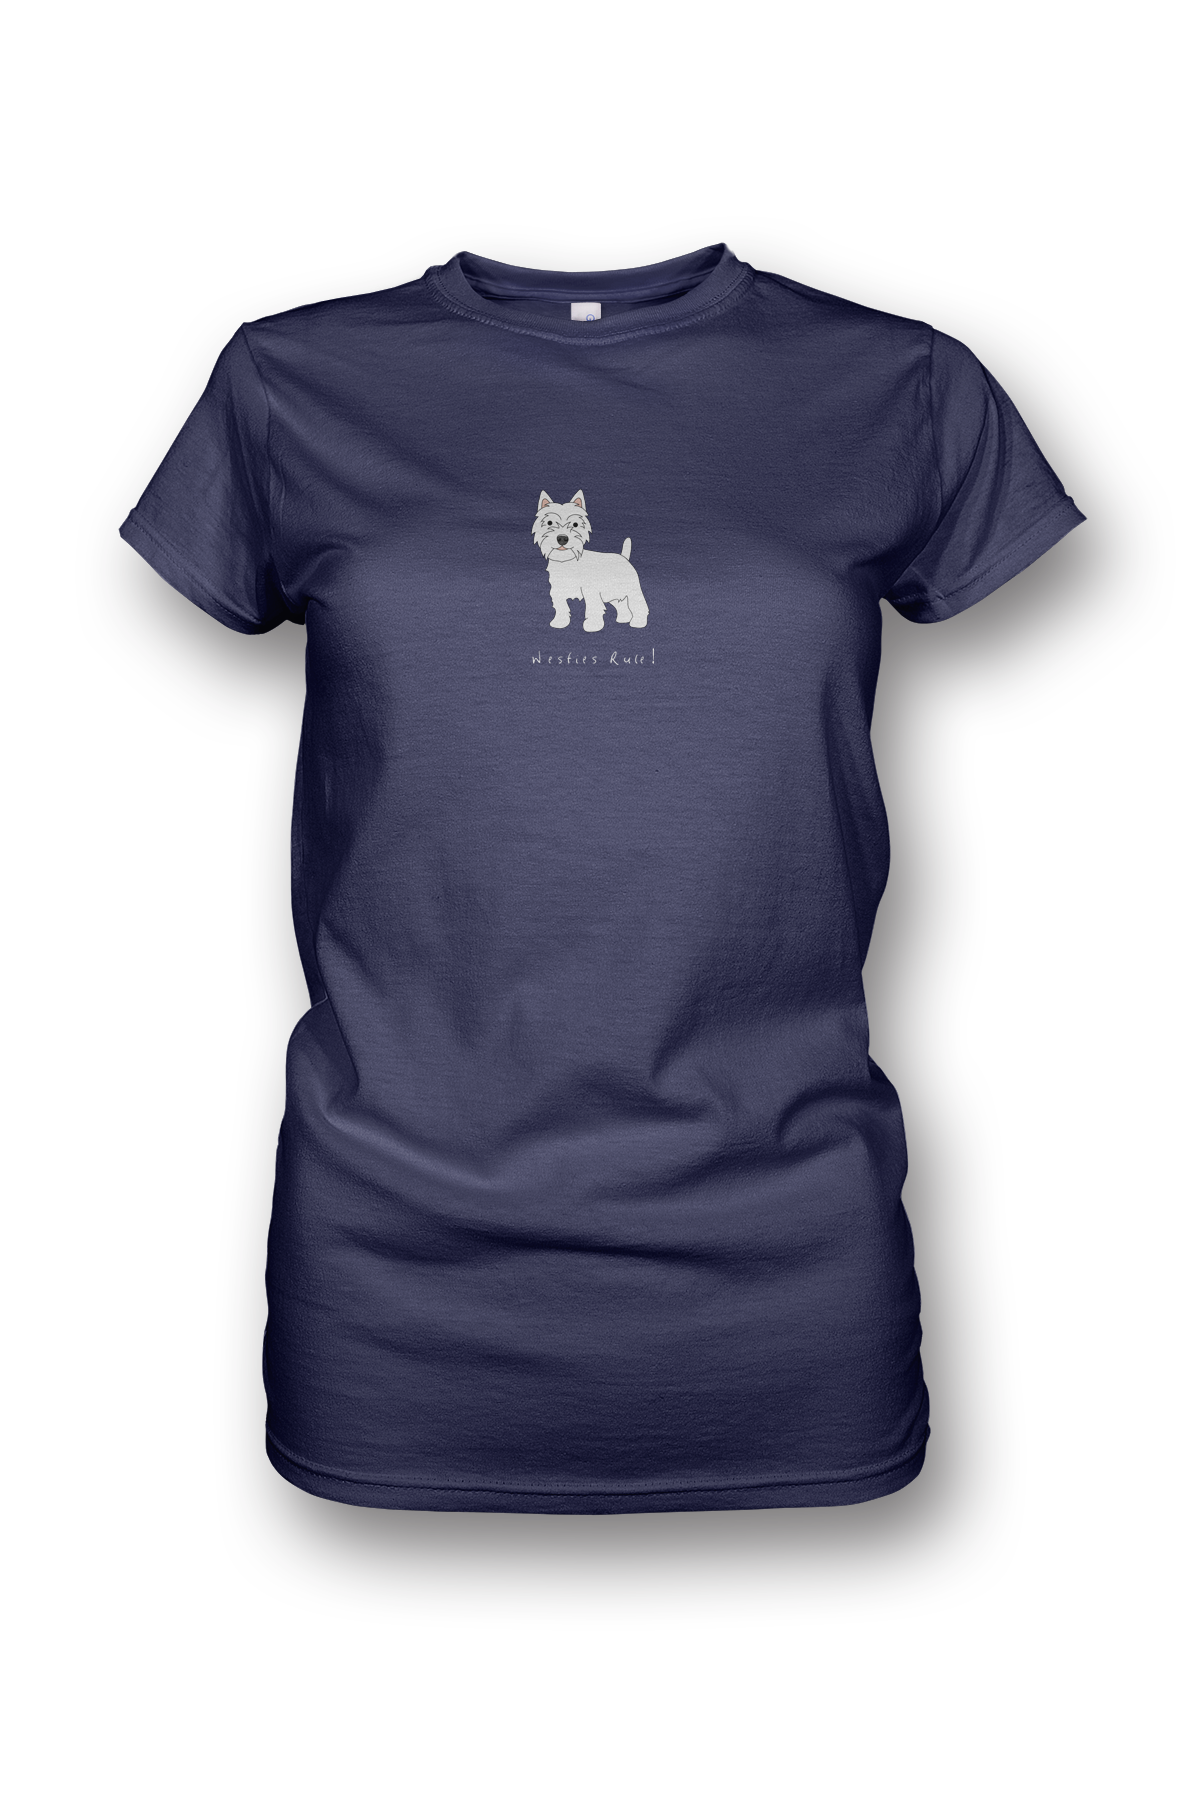 Ladies Crew Neck T-Shirt - Westies Rule! Heather Blue